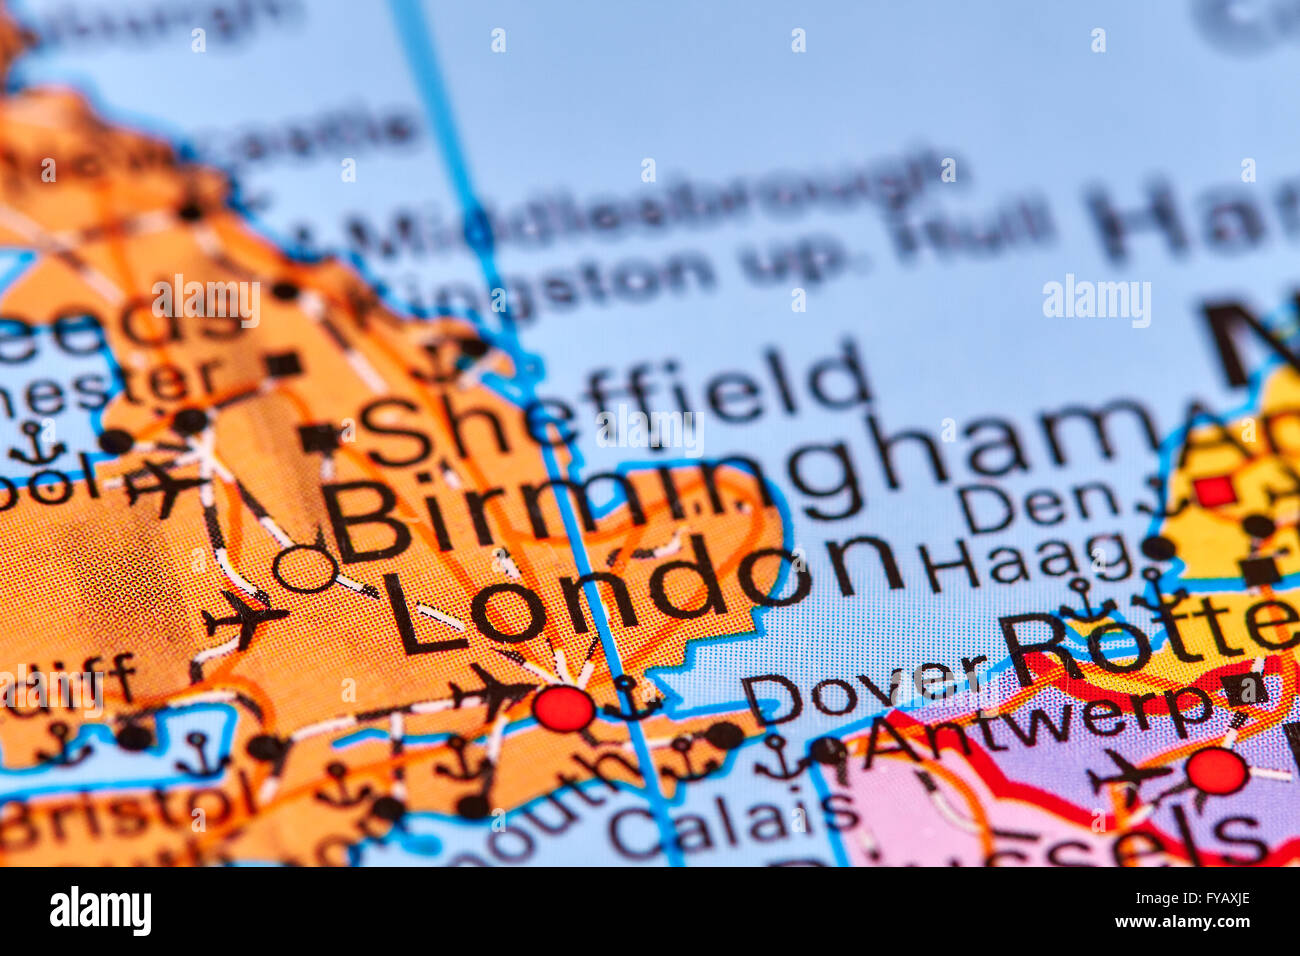 London capital city of england on the world map stock photo london capital city of england on the world map gumiabroncs Gallery